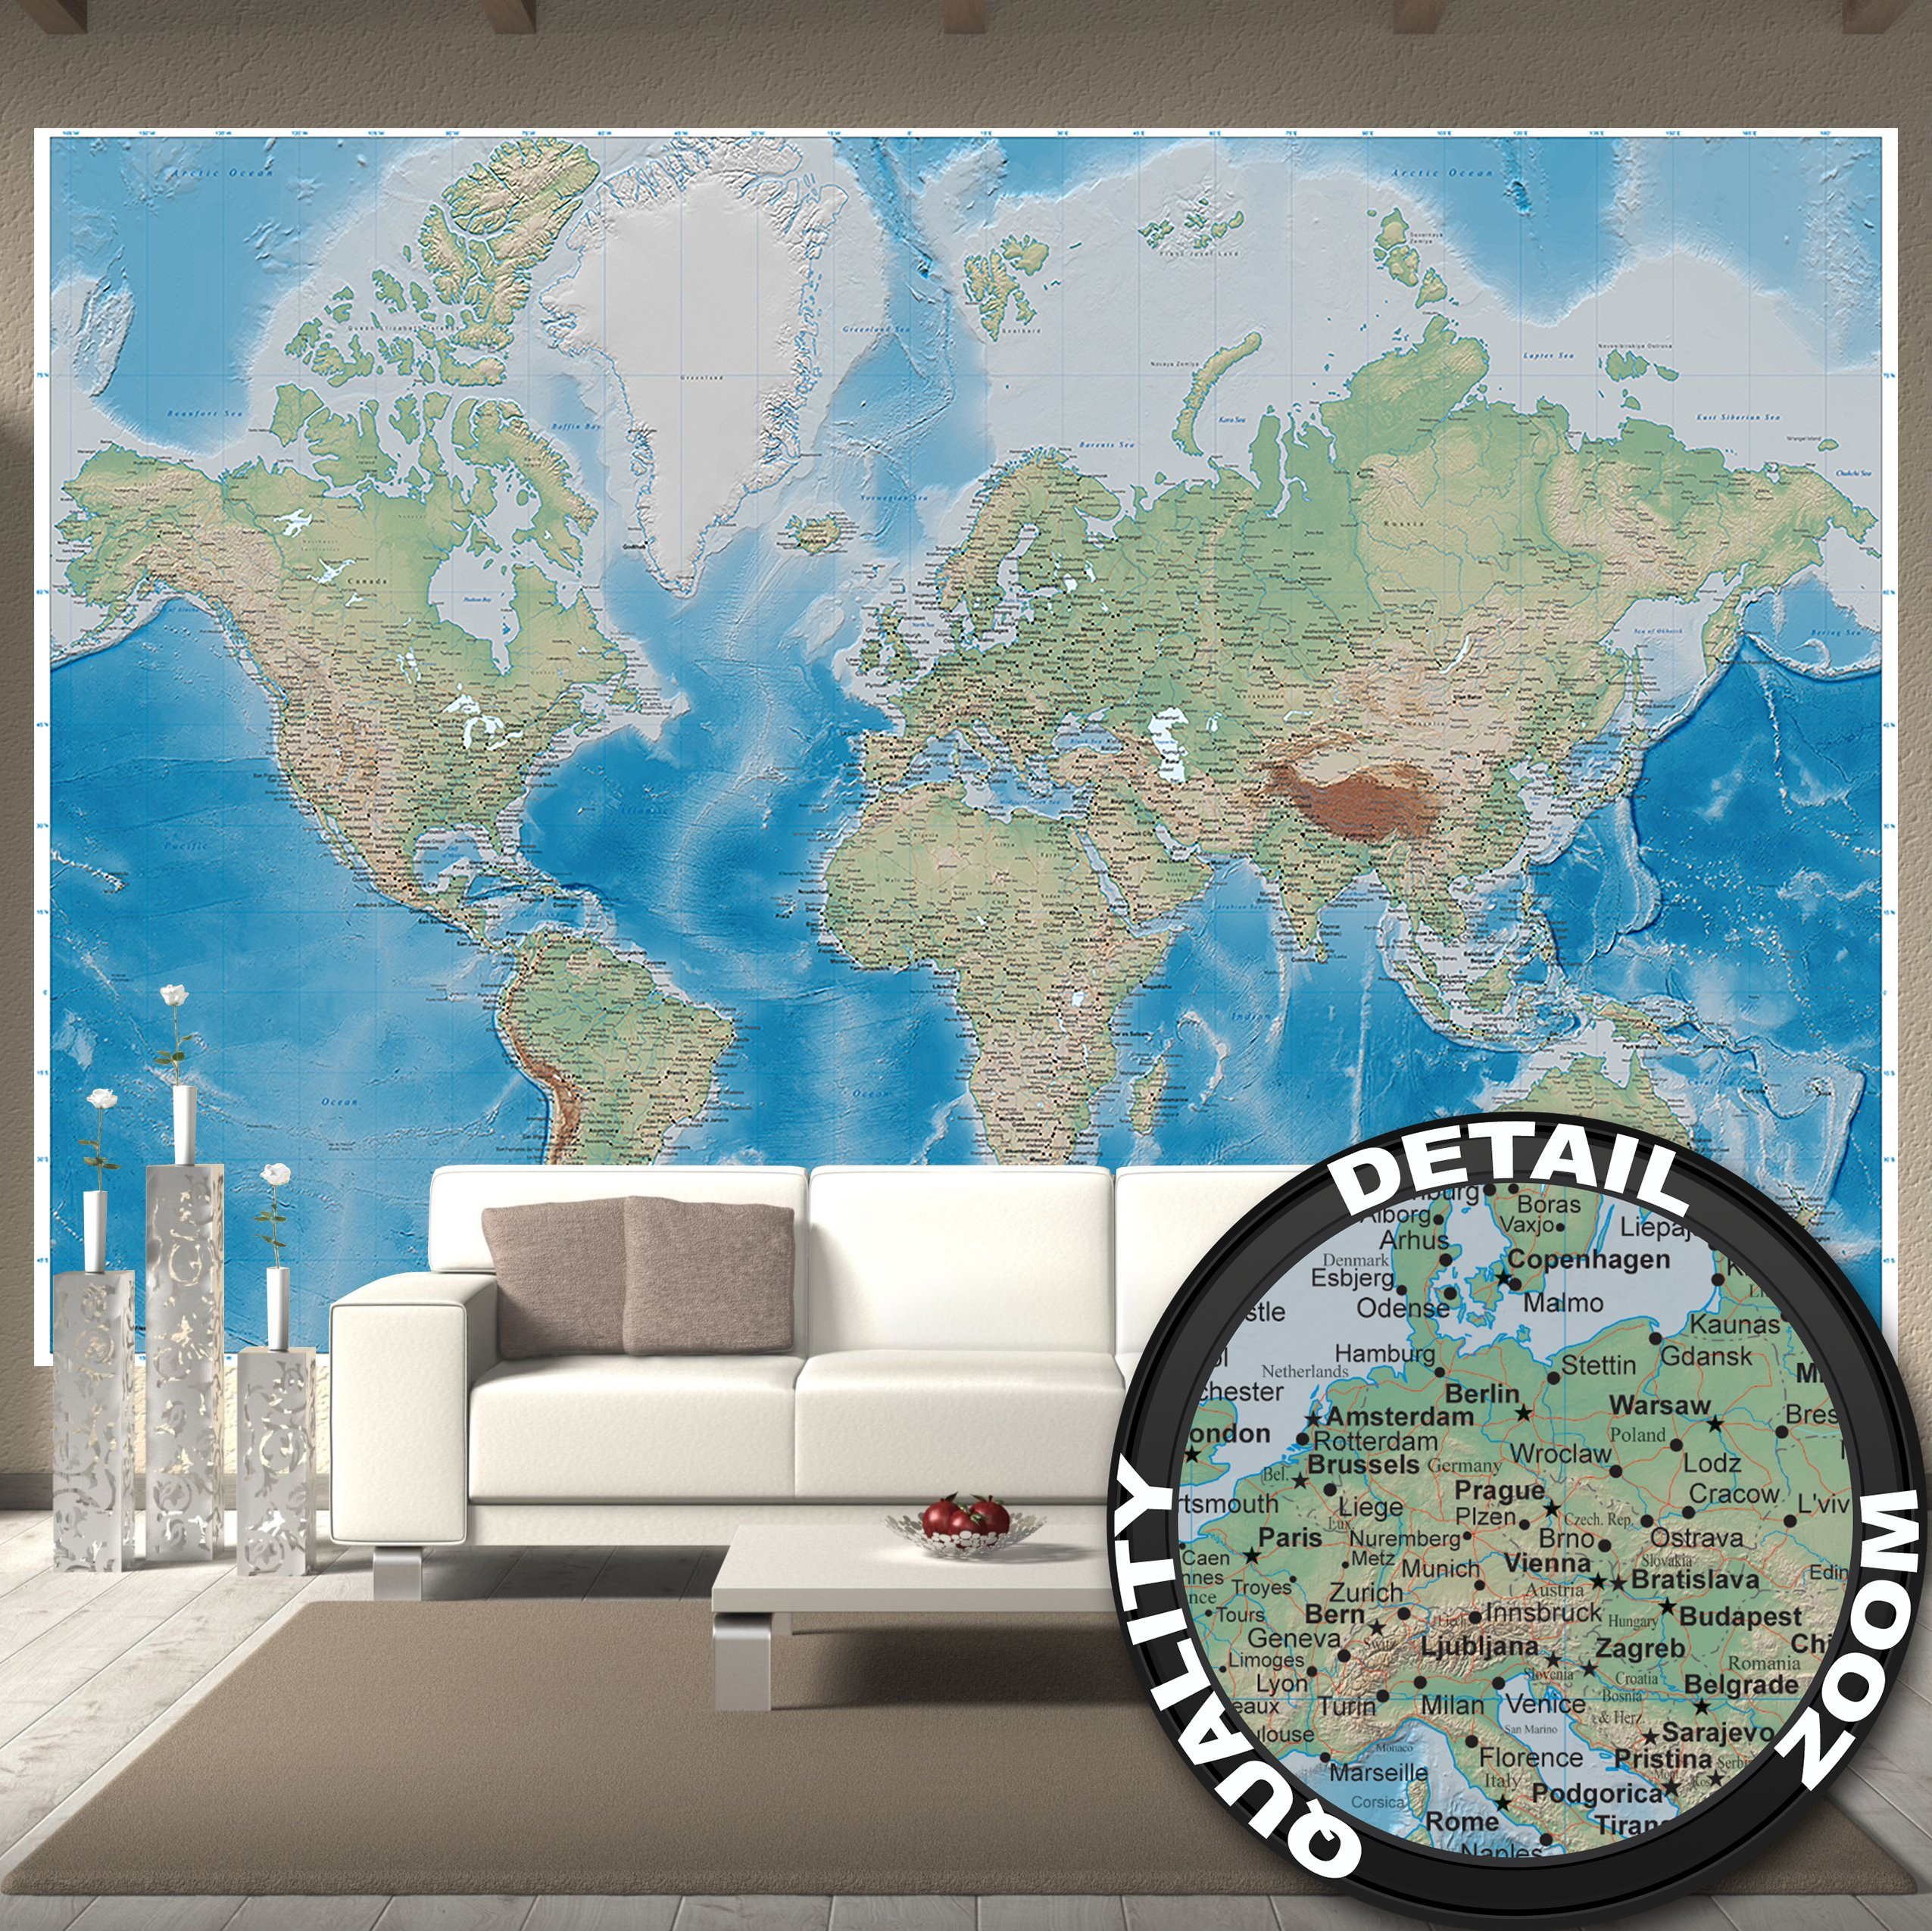 Wallpaper World map – wall picture decoration miller projection in plastically relief design earth atlas globe I paperhanging Wallpaper poster wall decor by GREAT ART (132.3 x 93.7 Inch)